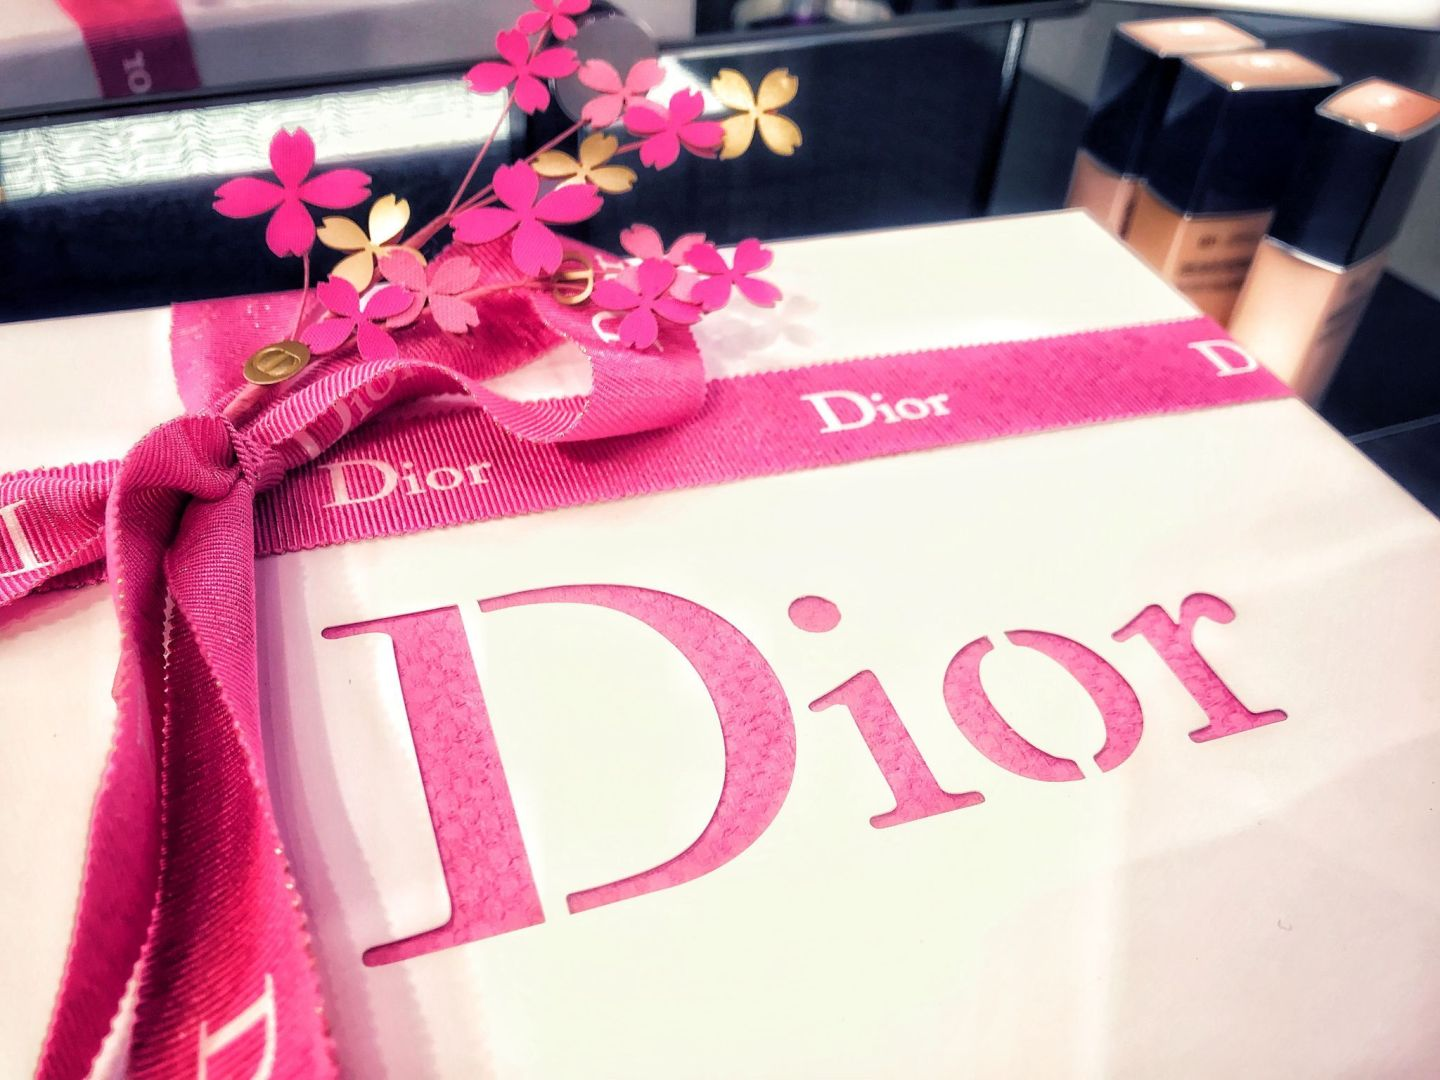 Dior Blogger Event gift box